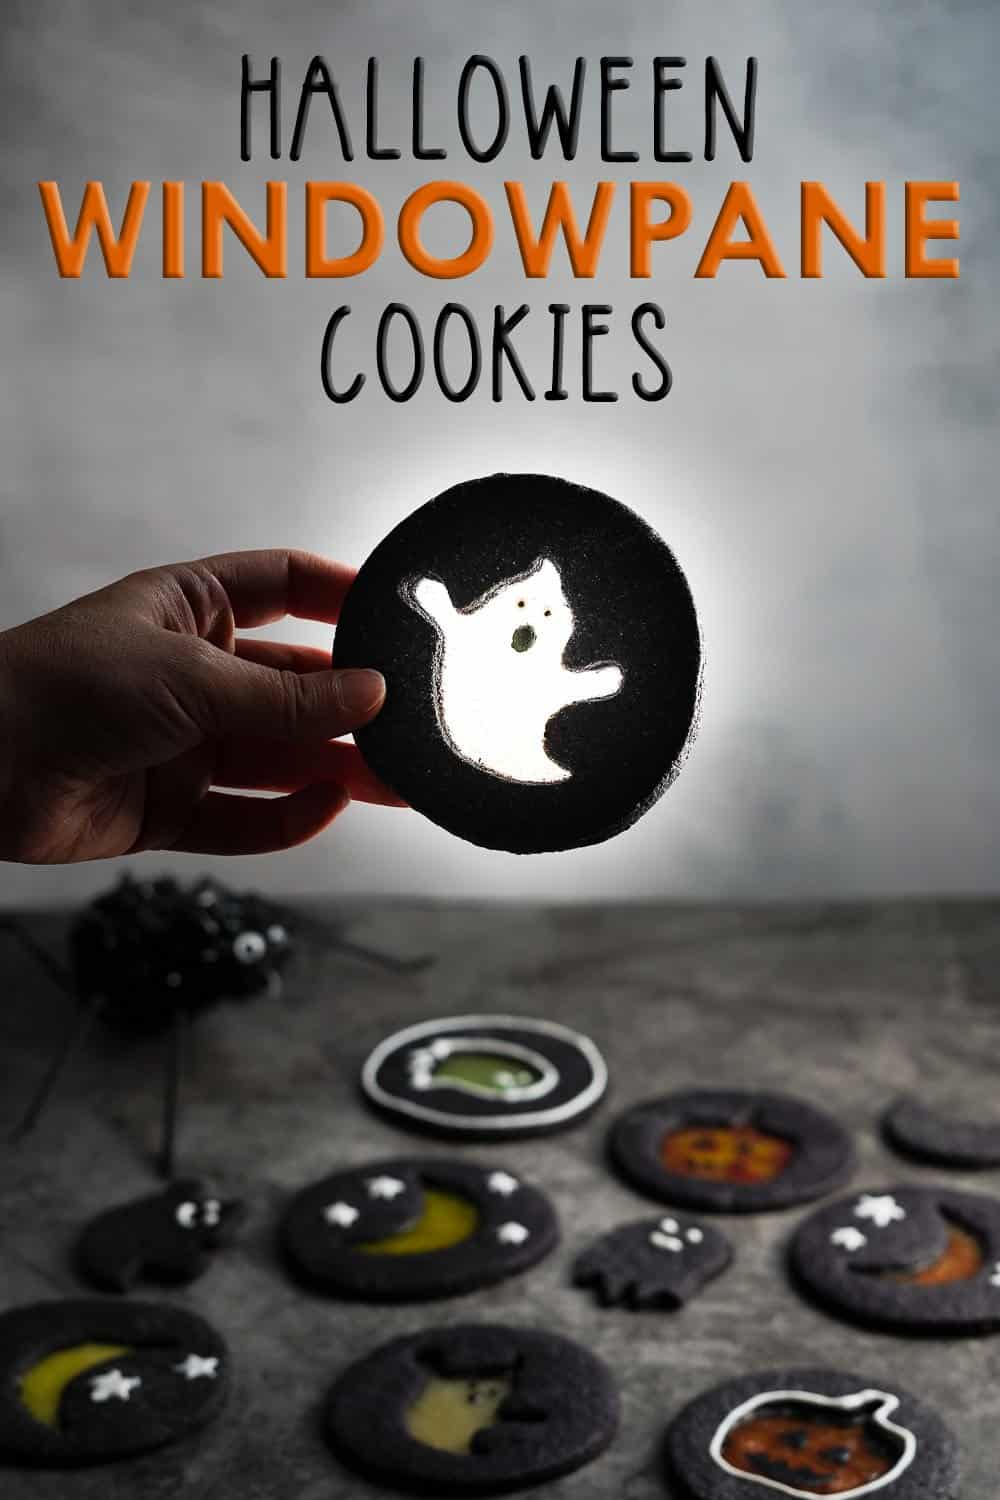 Hand holding black cookie with ghost design in the middle